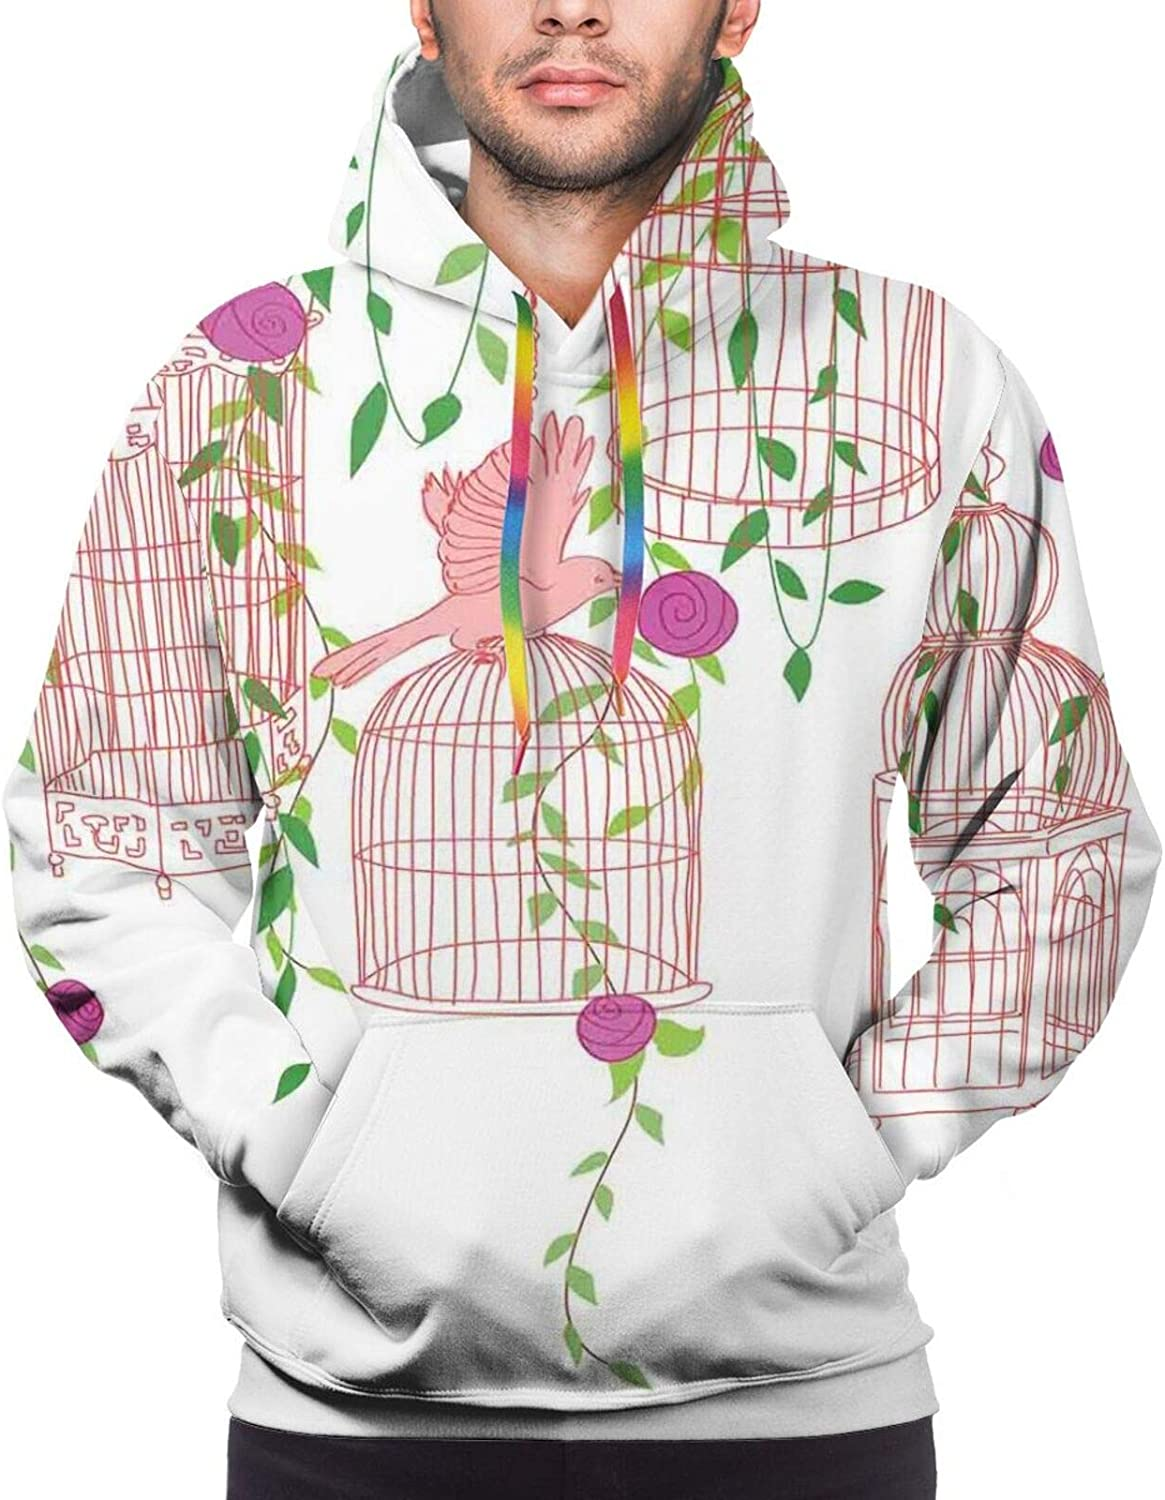 TENJONE Men's Hoodies Sweatshirts,Rose Flowers Leaves Buds Natural Themed Image Soft Toned Abstract Background